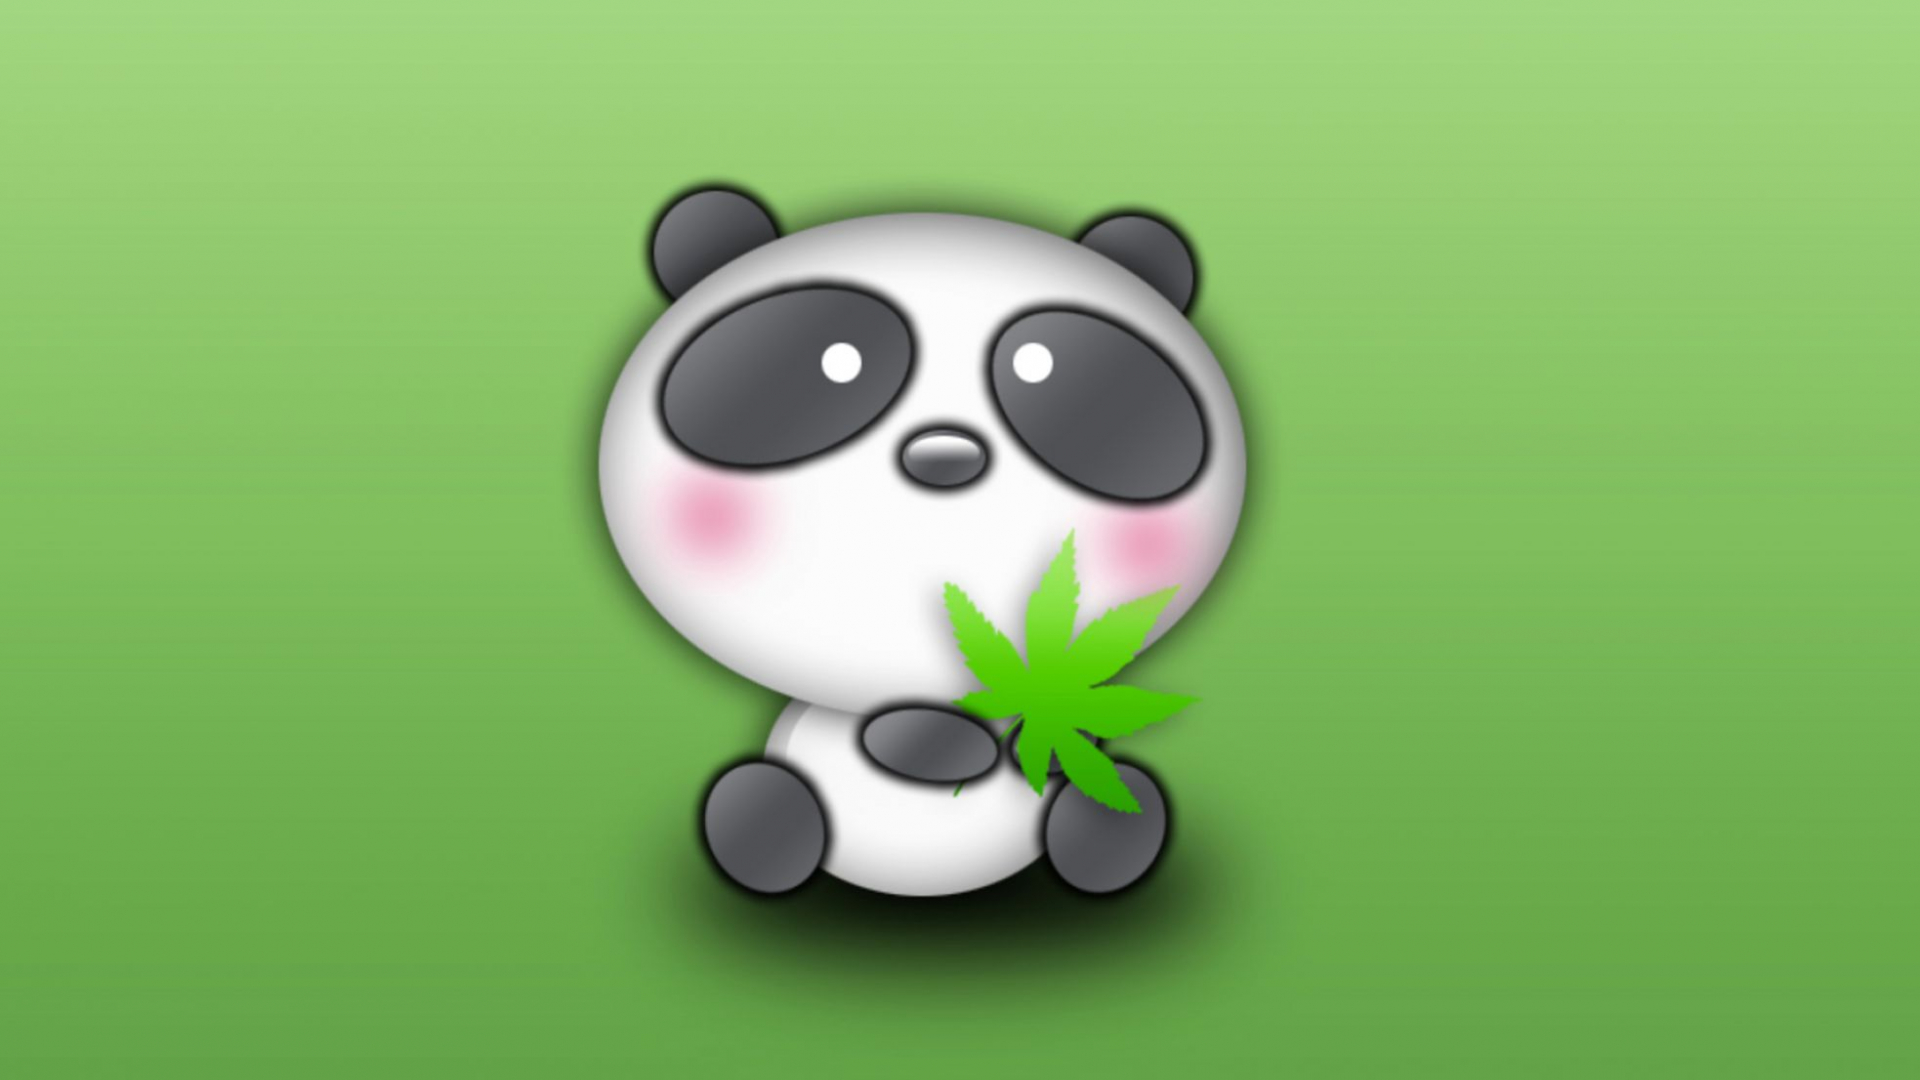 Free Download Cute Baby Panda Cartoon Pictures 3 1966x1229 For Your Desktop Mobile Tablet Explore 70 Cartoon Panda Wallpaper Cute Panda Desktop Wallpaper Kung Fu Panda Wallpaper Cute Cartoon Panda Wallpaper